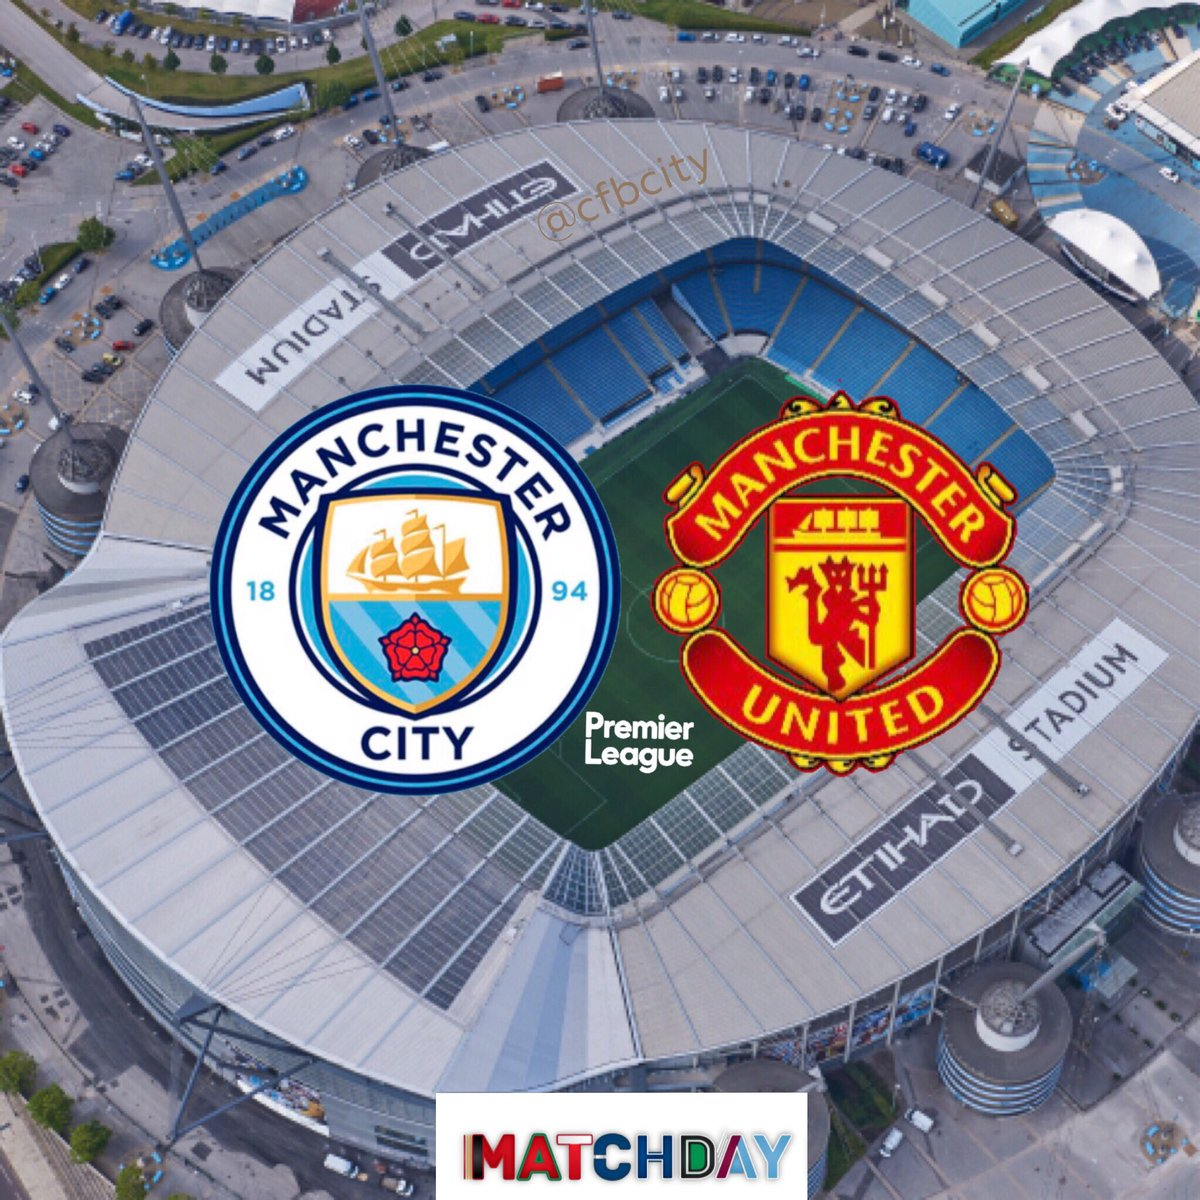 DIRETTA TV: Manchester City-Manchester United in Streaming su Sky (Premier League)